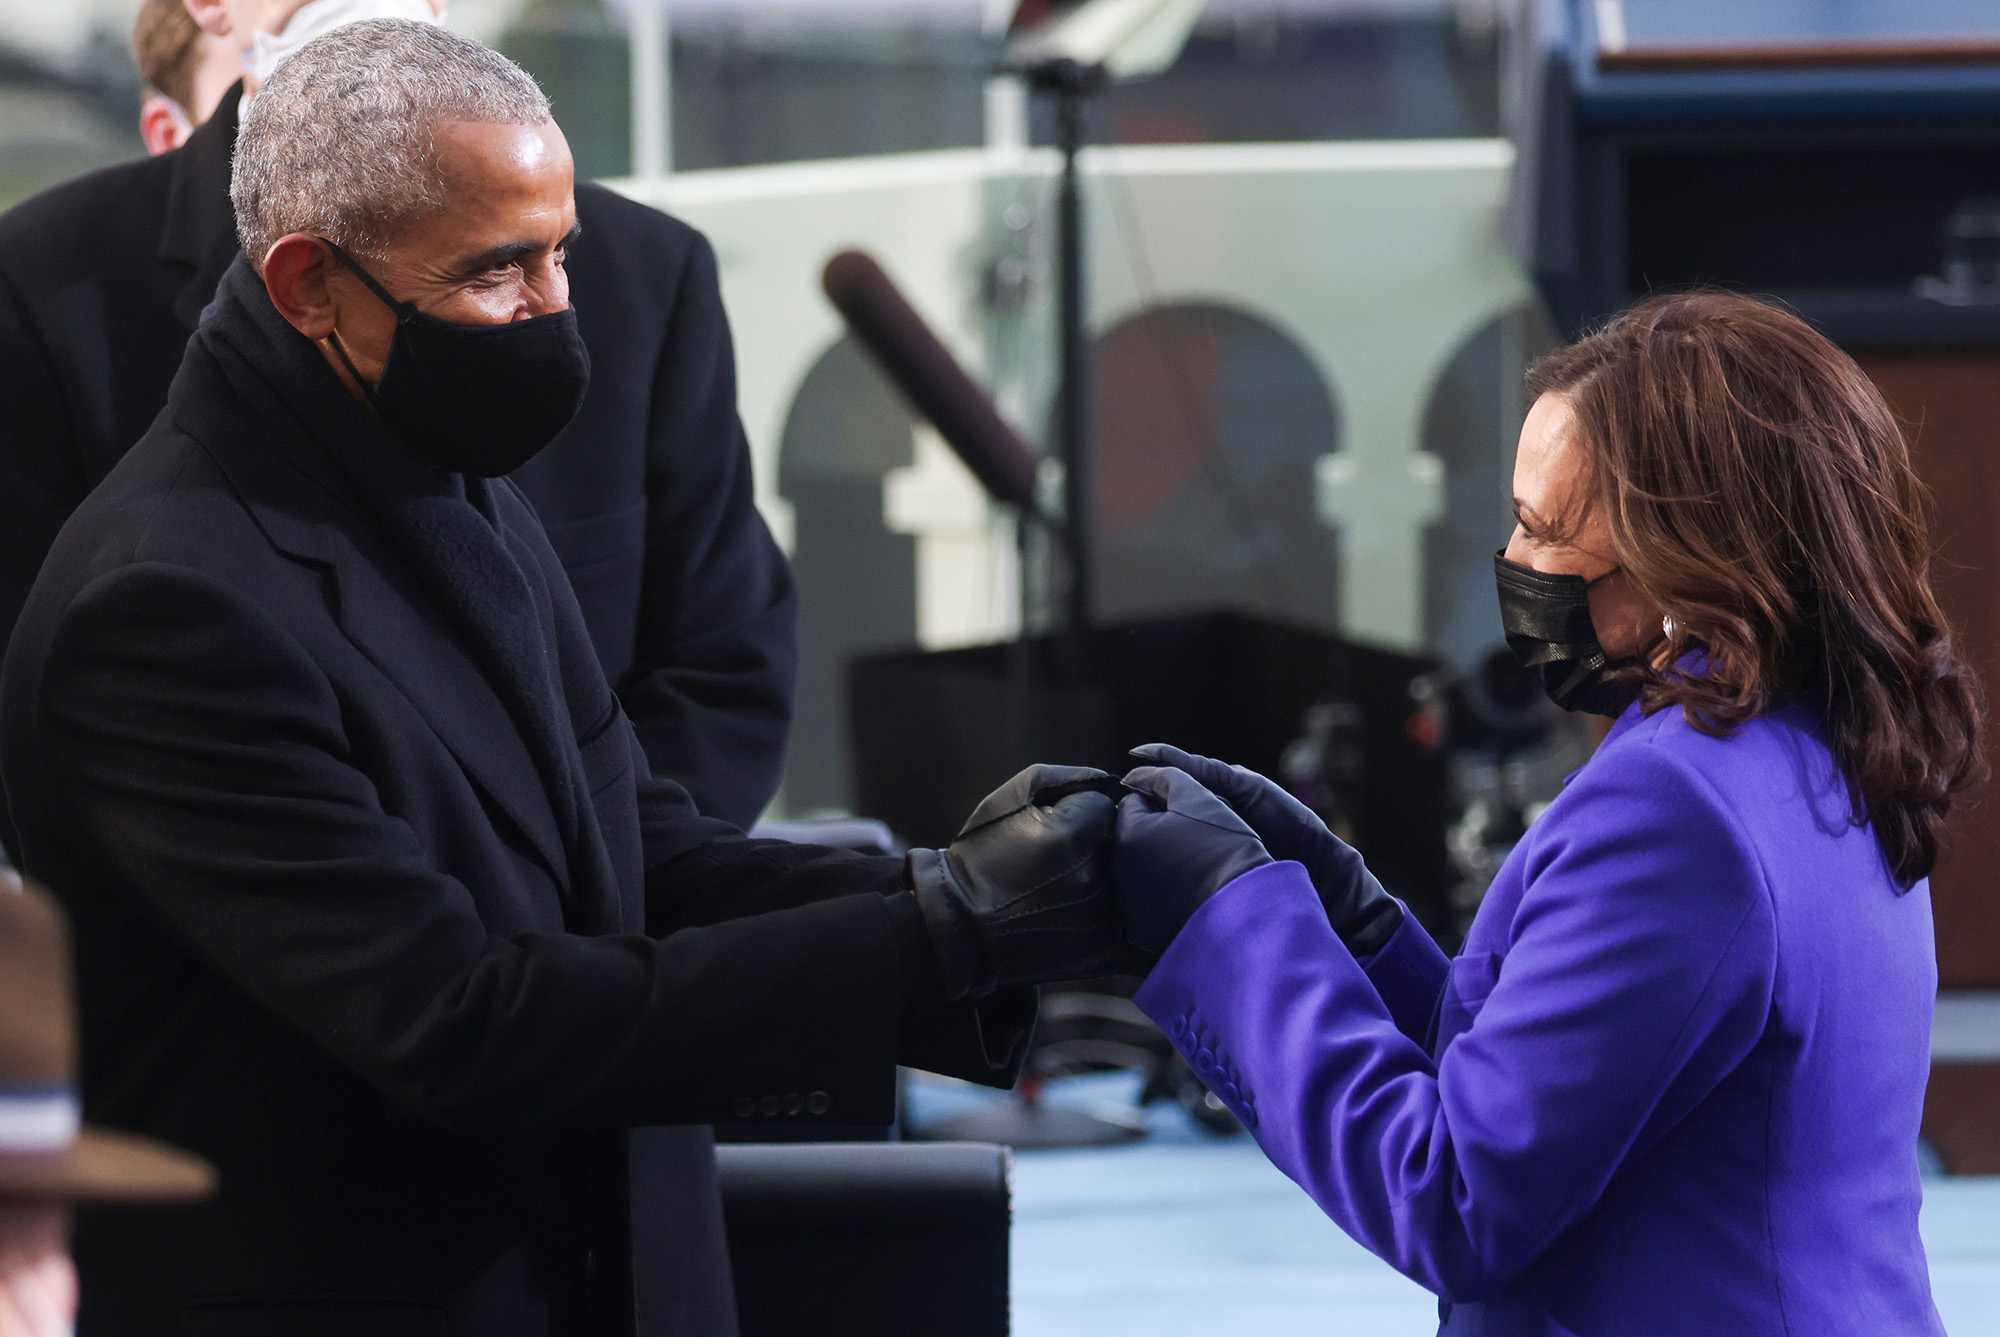 Former President Barack Obama (left) claps his fists with Vice President-elect Kamala Harris as they arrive on the Western Front of the Capitol in Washington on January 20, 2021 for the inauguration of Joe Biden as the 46th President. (Jonathan Ernst / Pool, AFP via Getty Images)